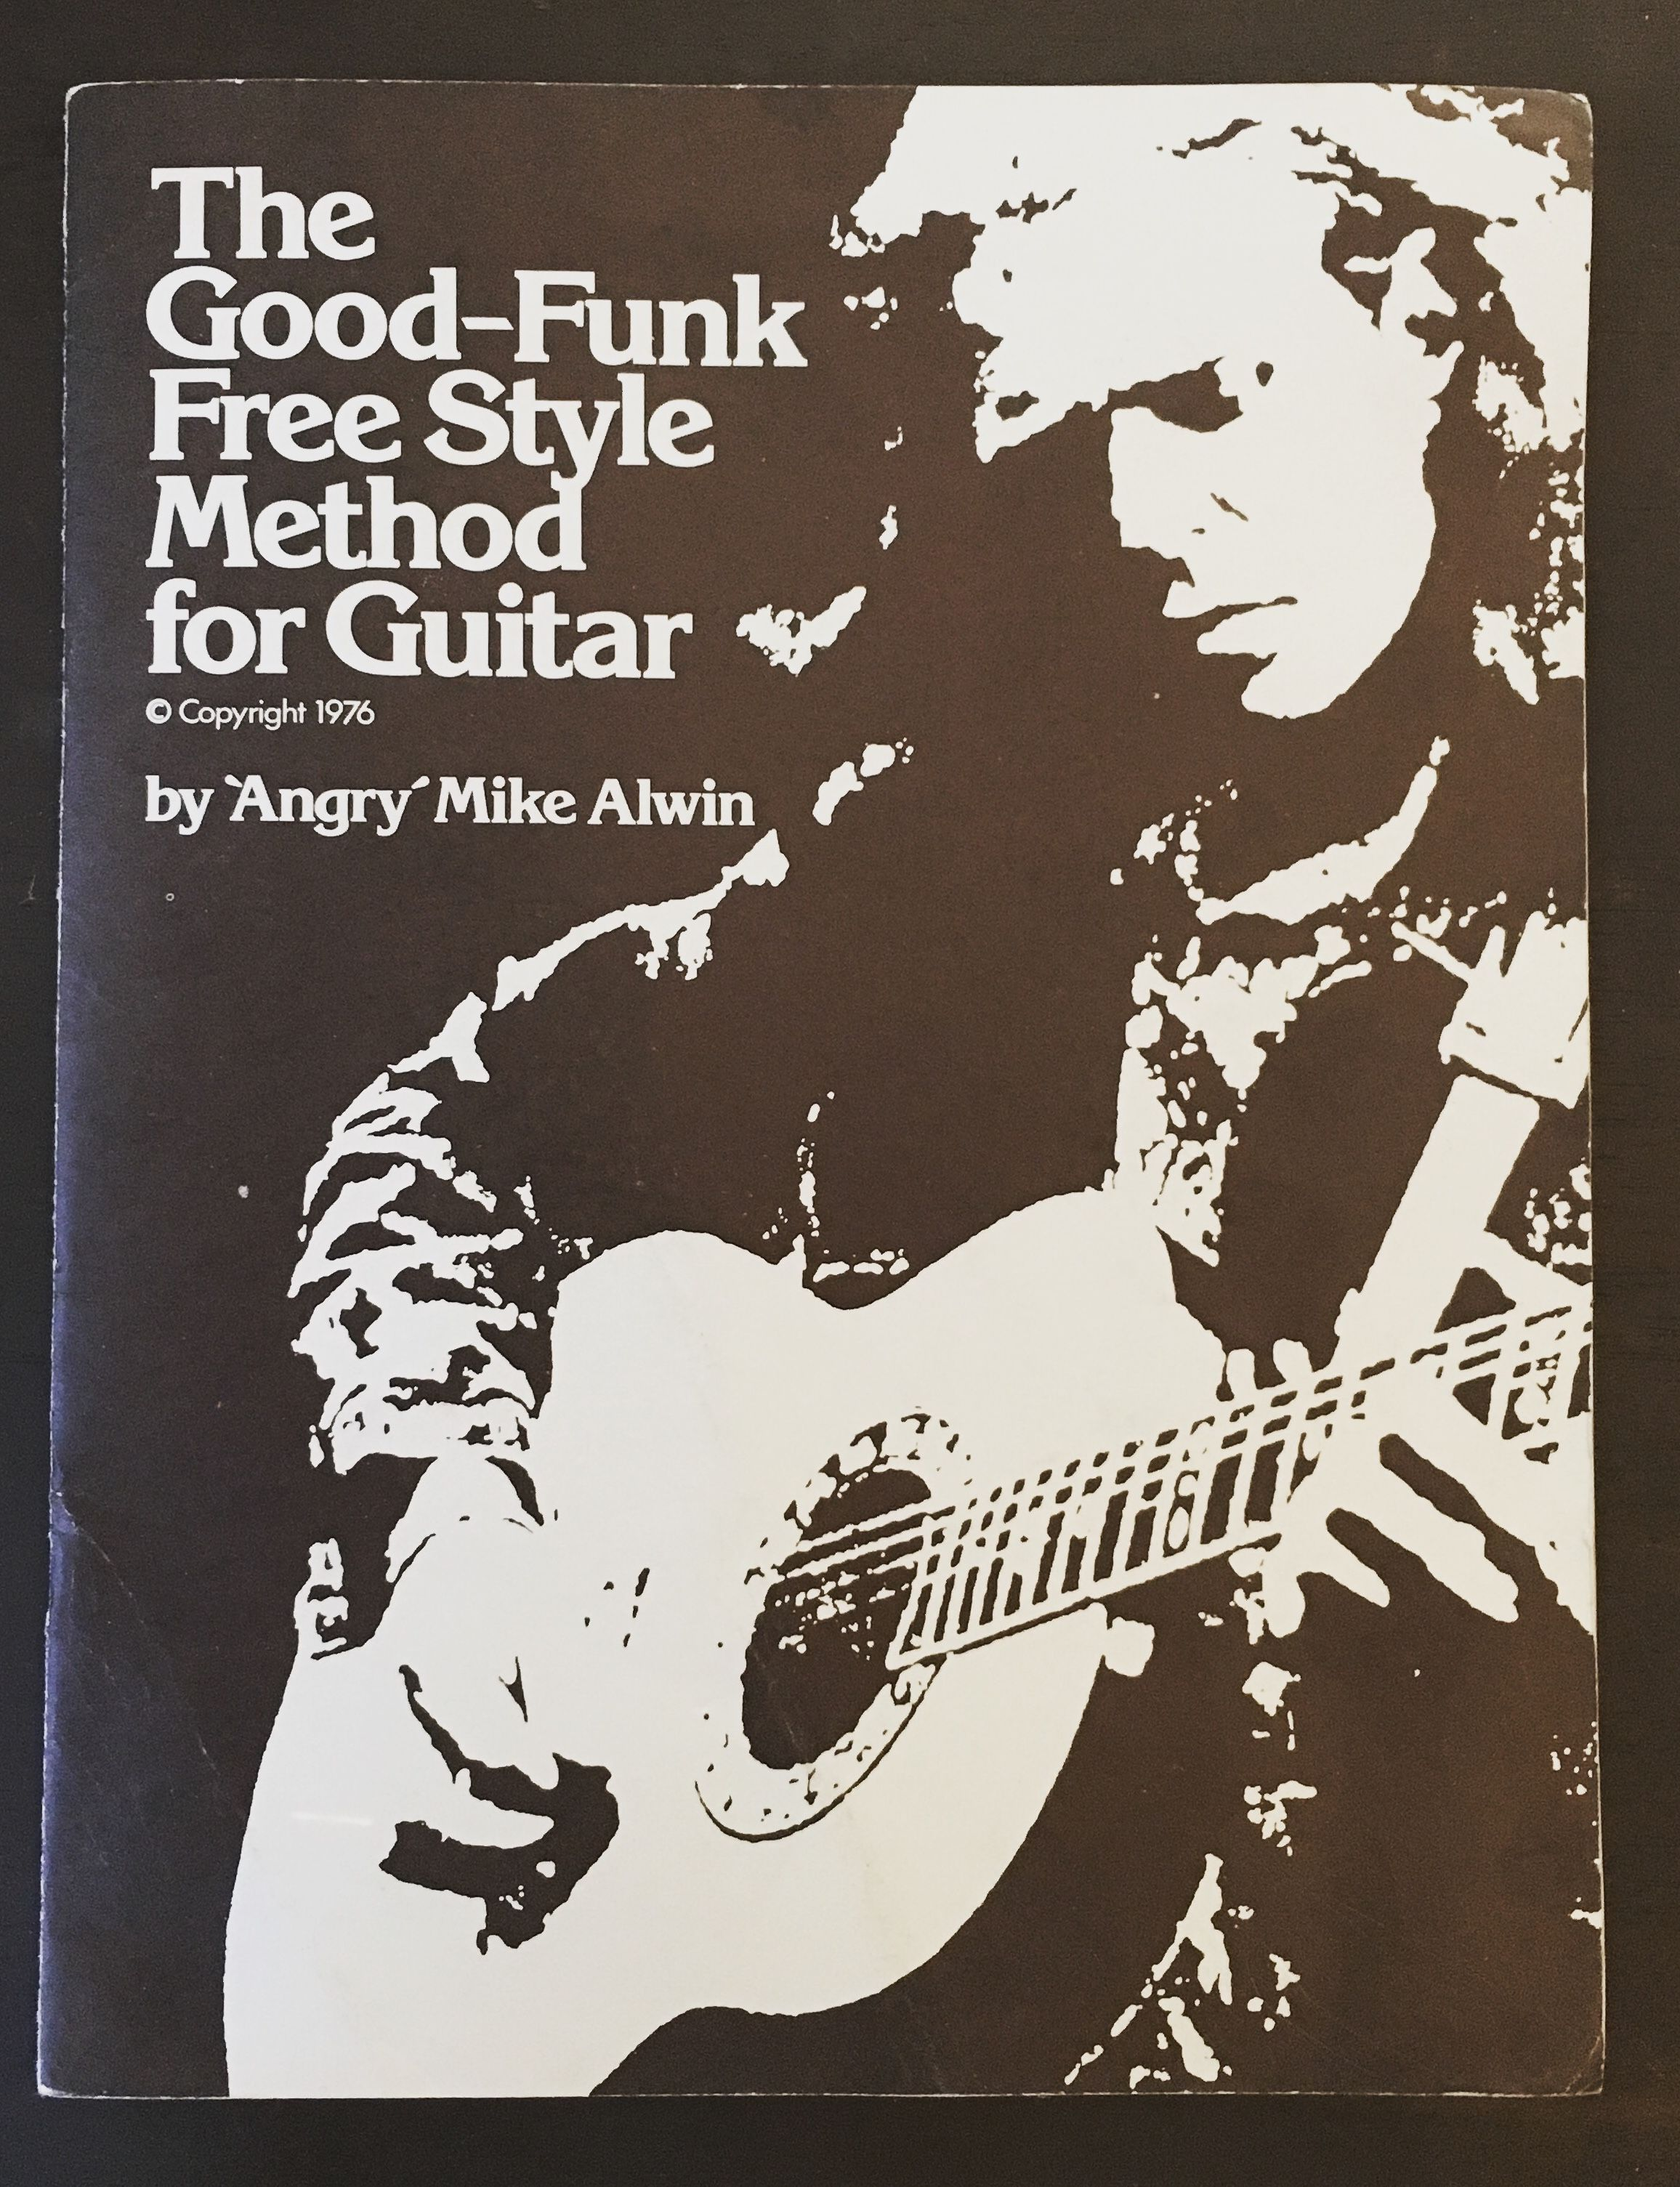 The Good-Funk Free Style Method for Guitar, 'Angry' Mike Alwin